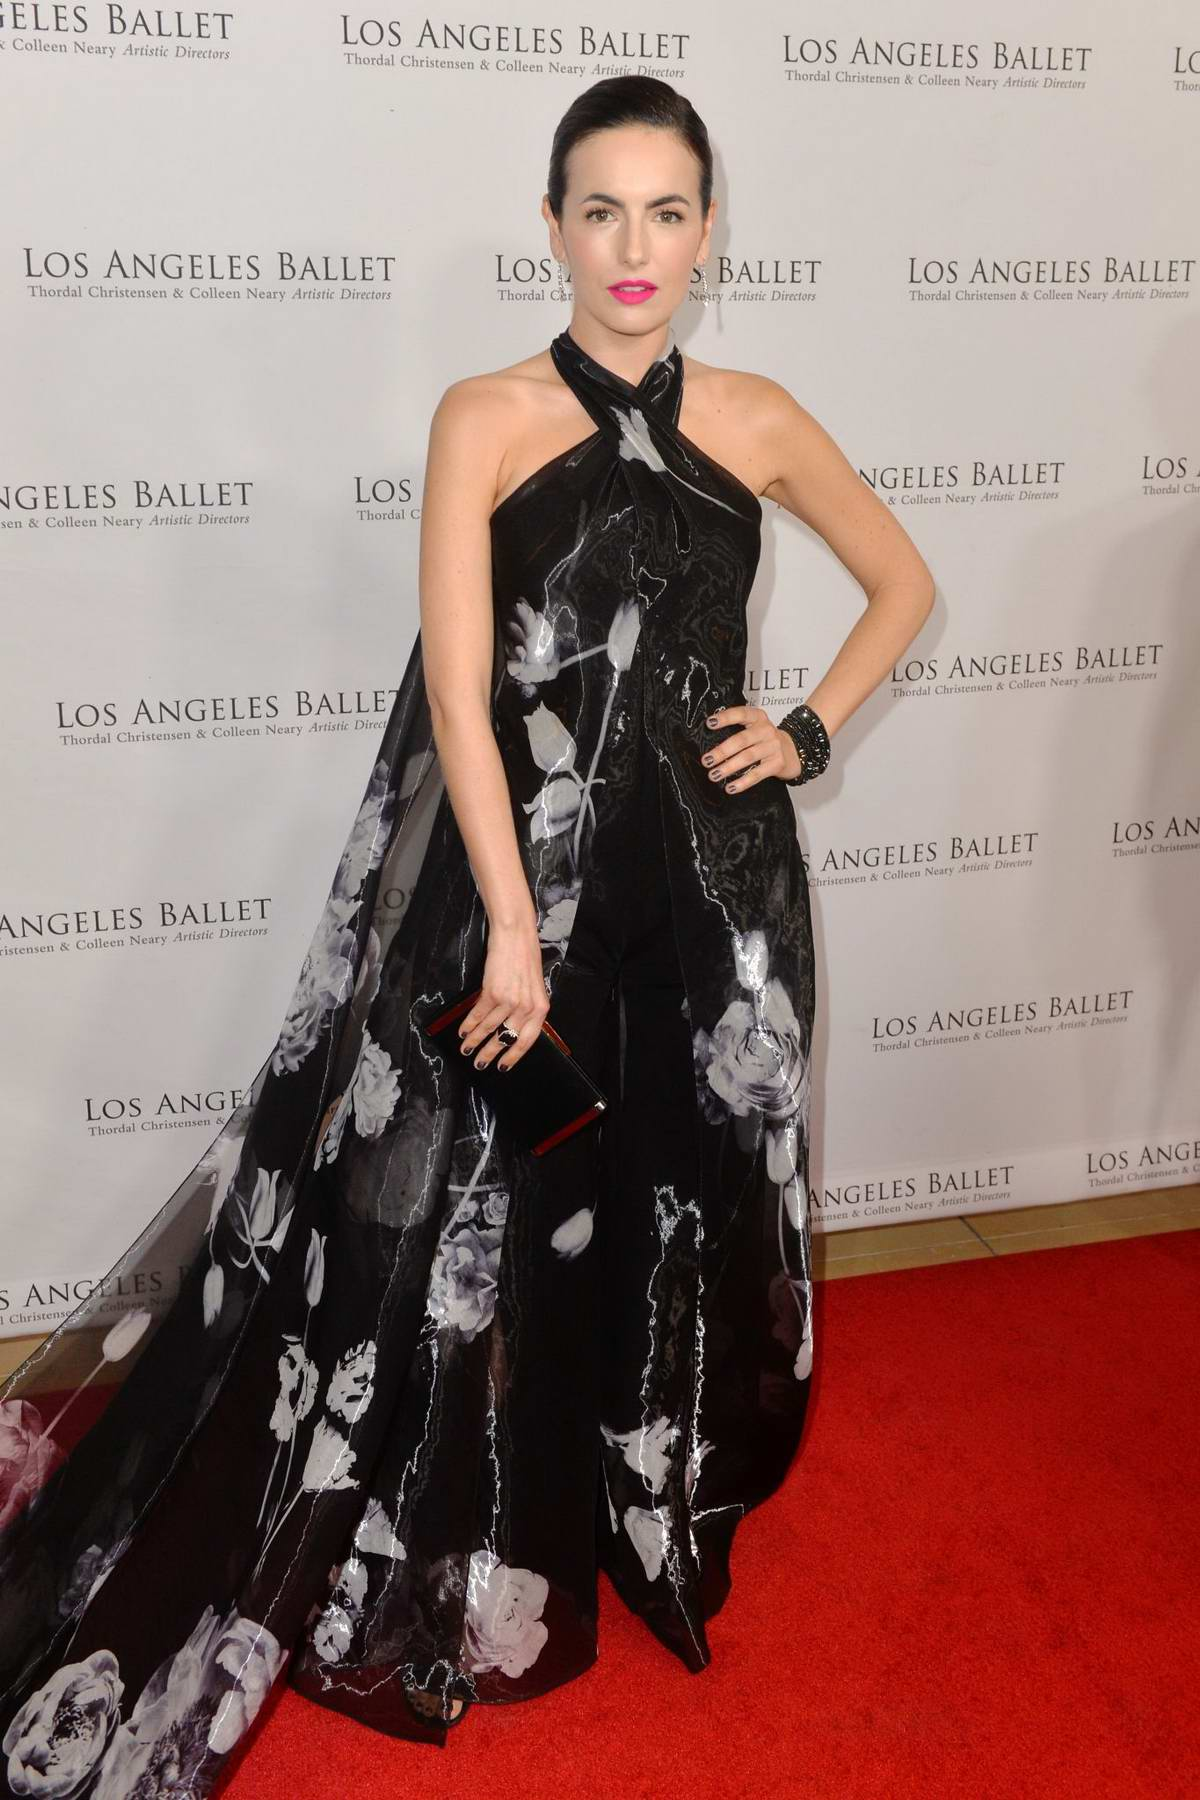 Camilla Belle attends the Los Angeles Ballet's 2019 Gala at The Beverly Hilton Hotel in Beverly Hills, California